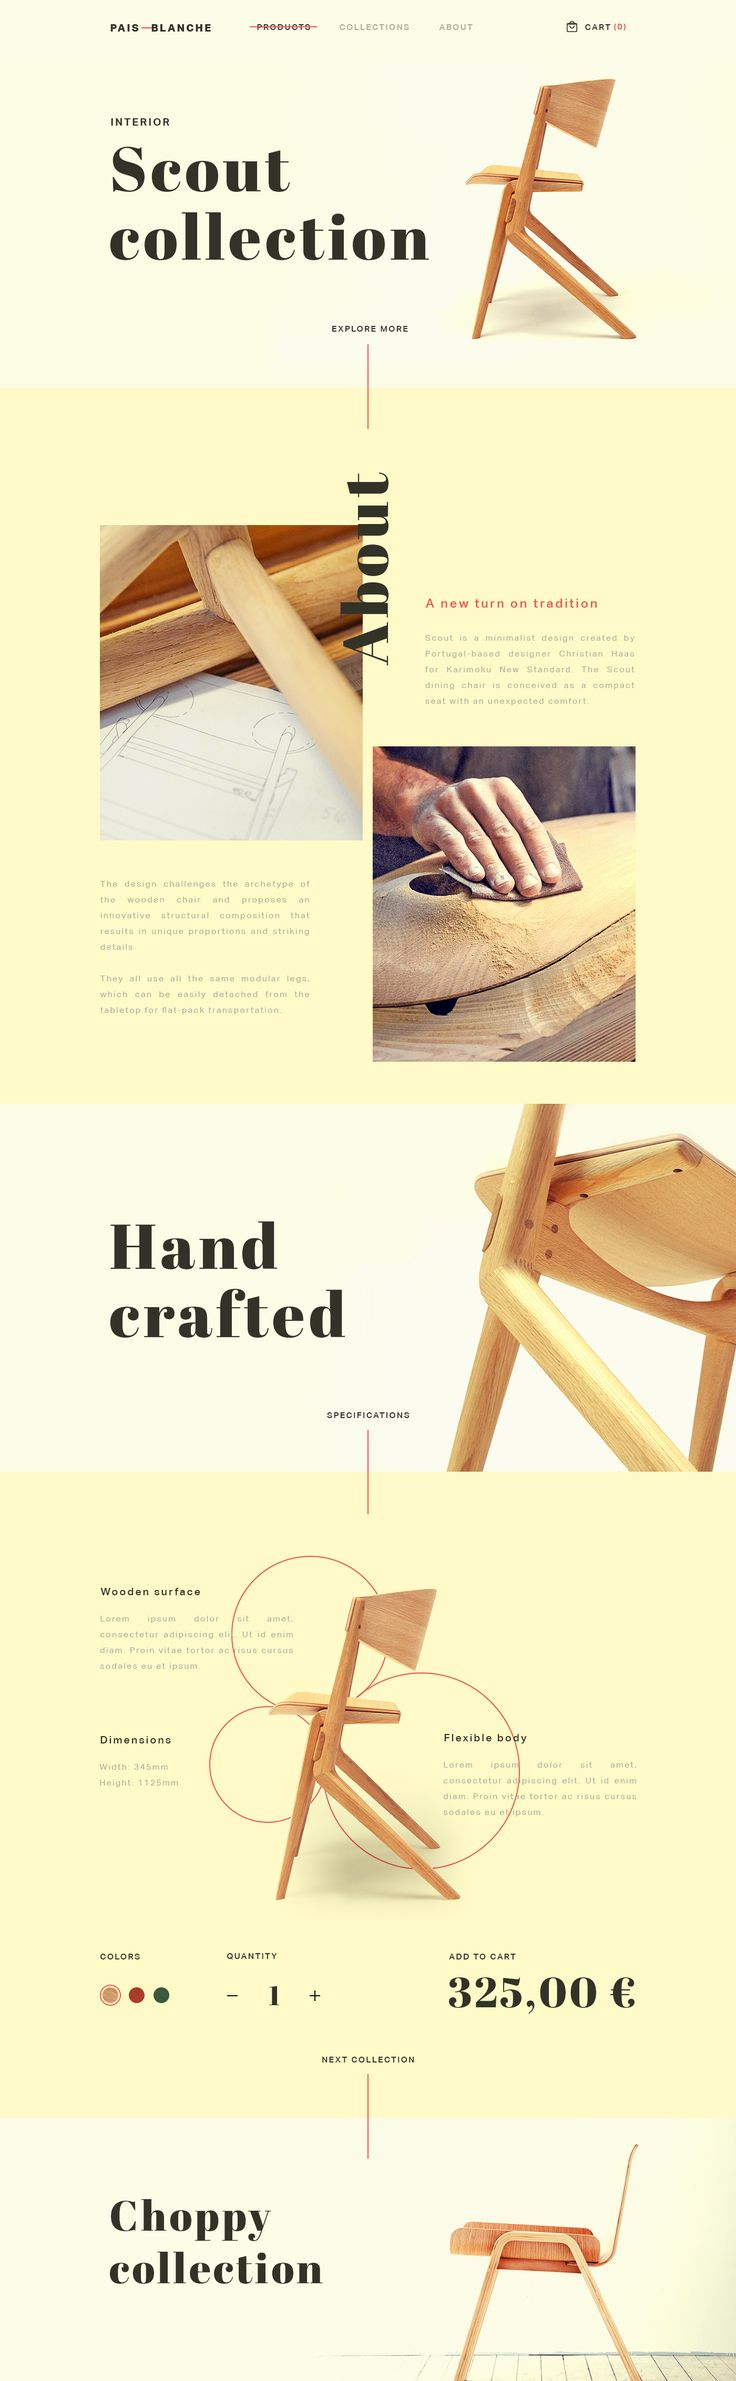 Poster design pinterest - Find This Pin And More On Design Ux By Scantor